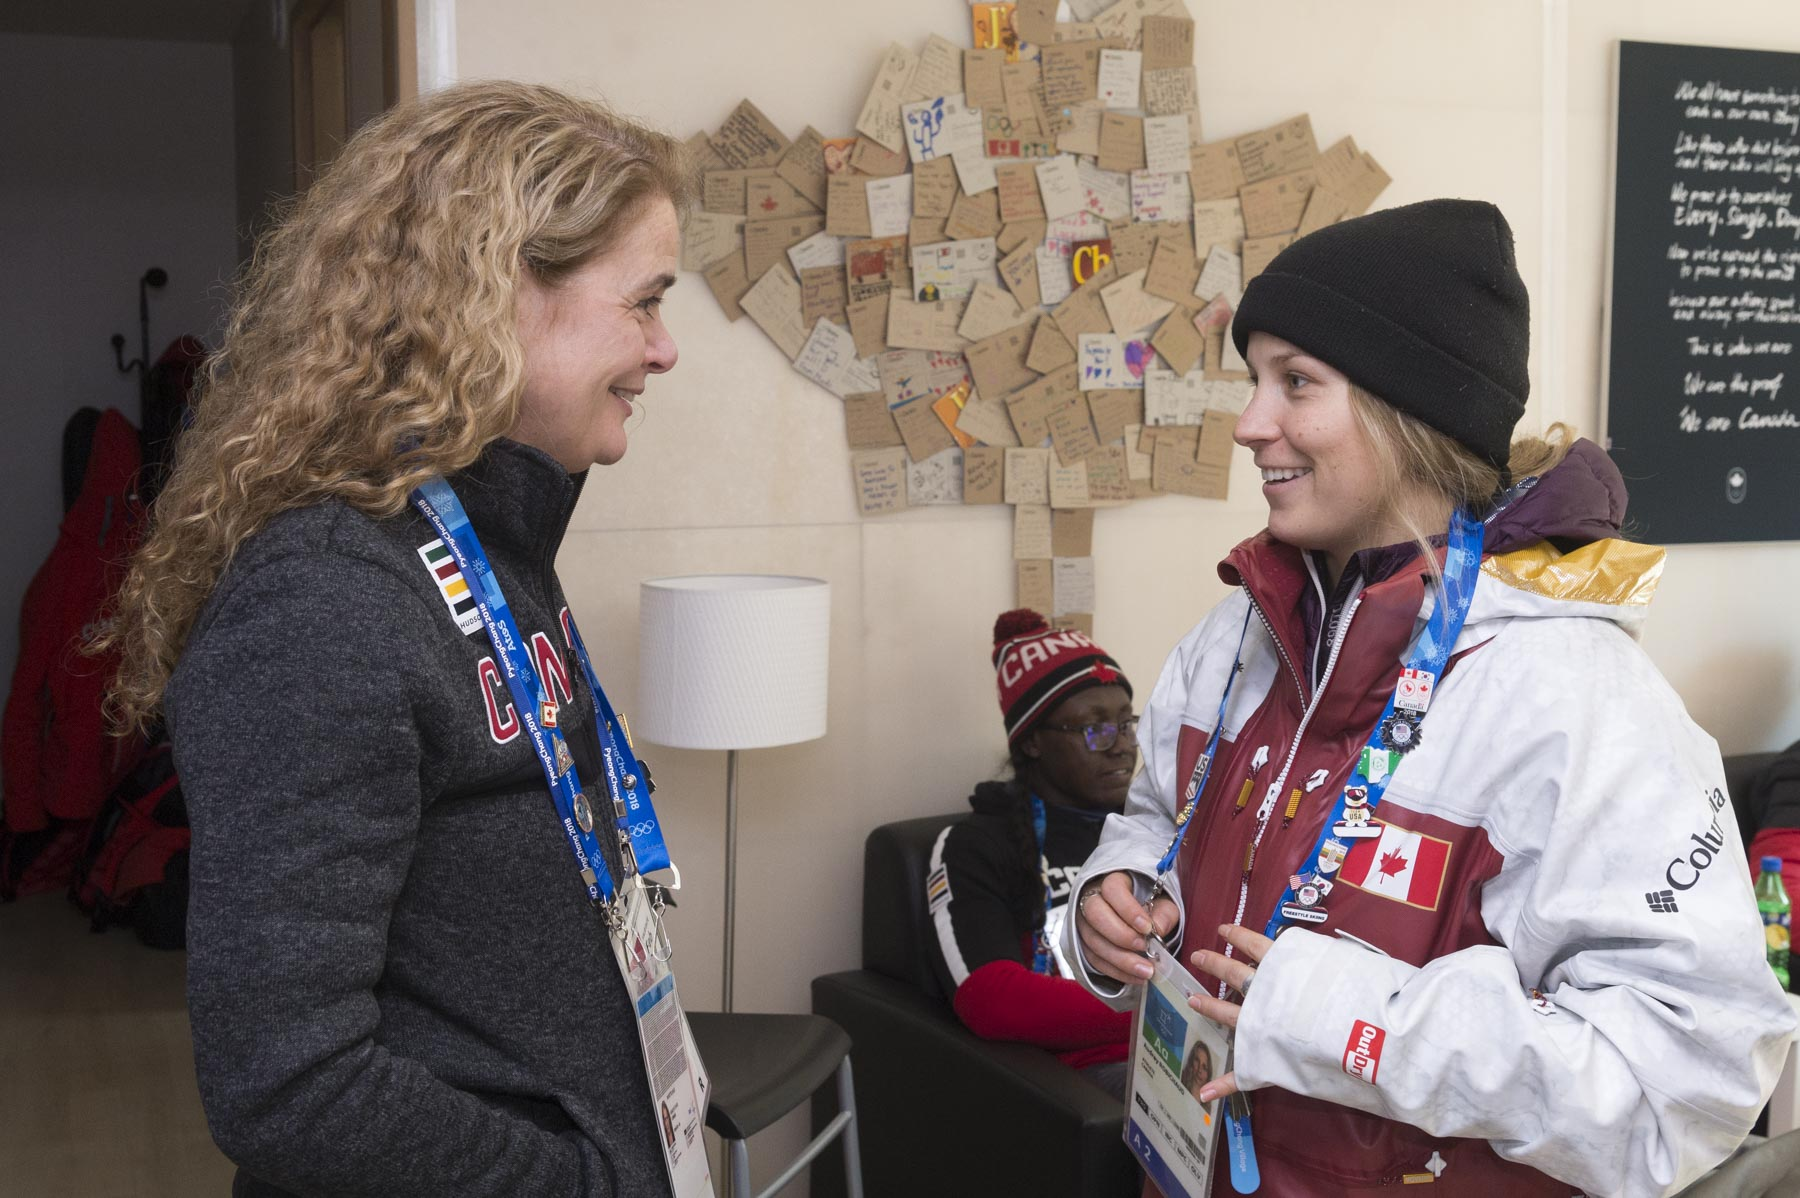 She also spoke with freestyle skier Audrey Robichaud.